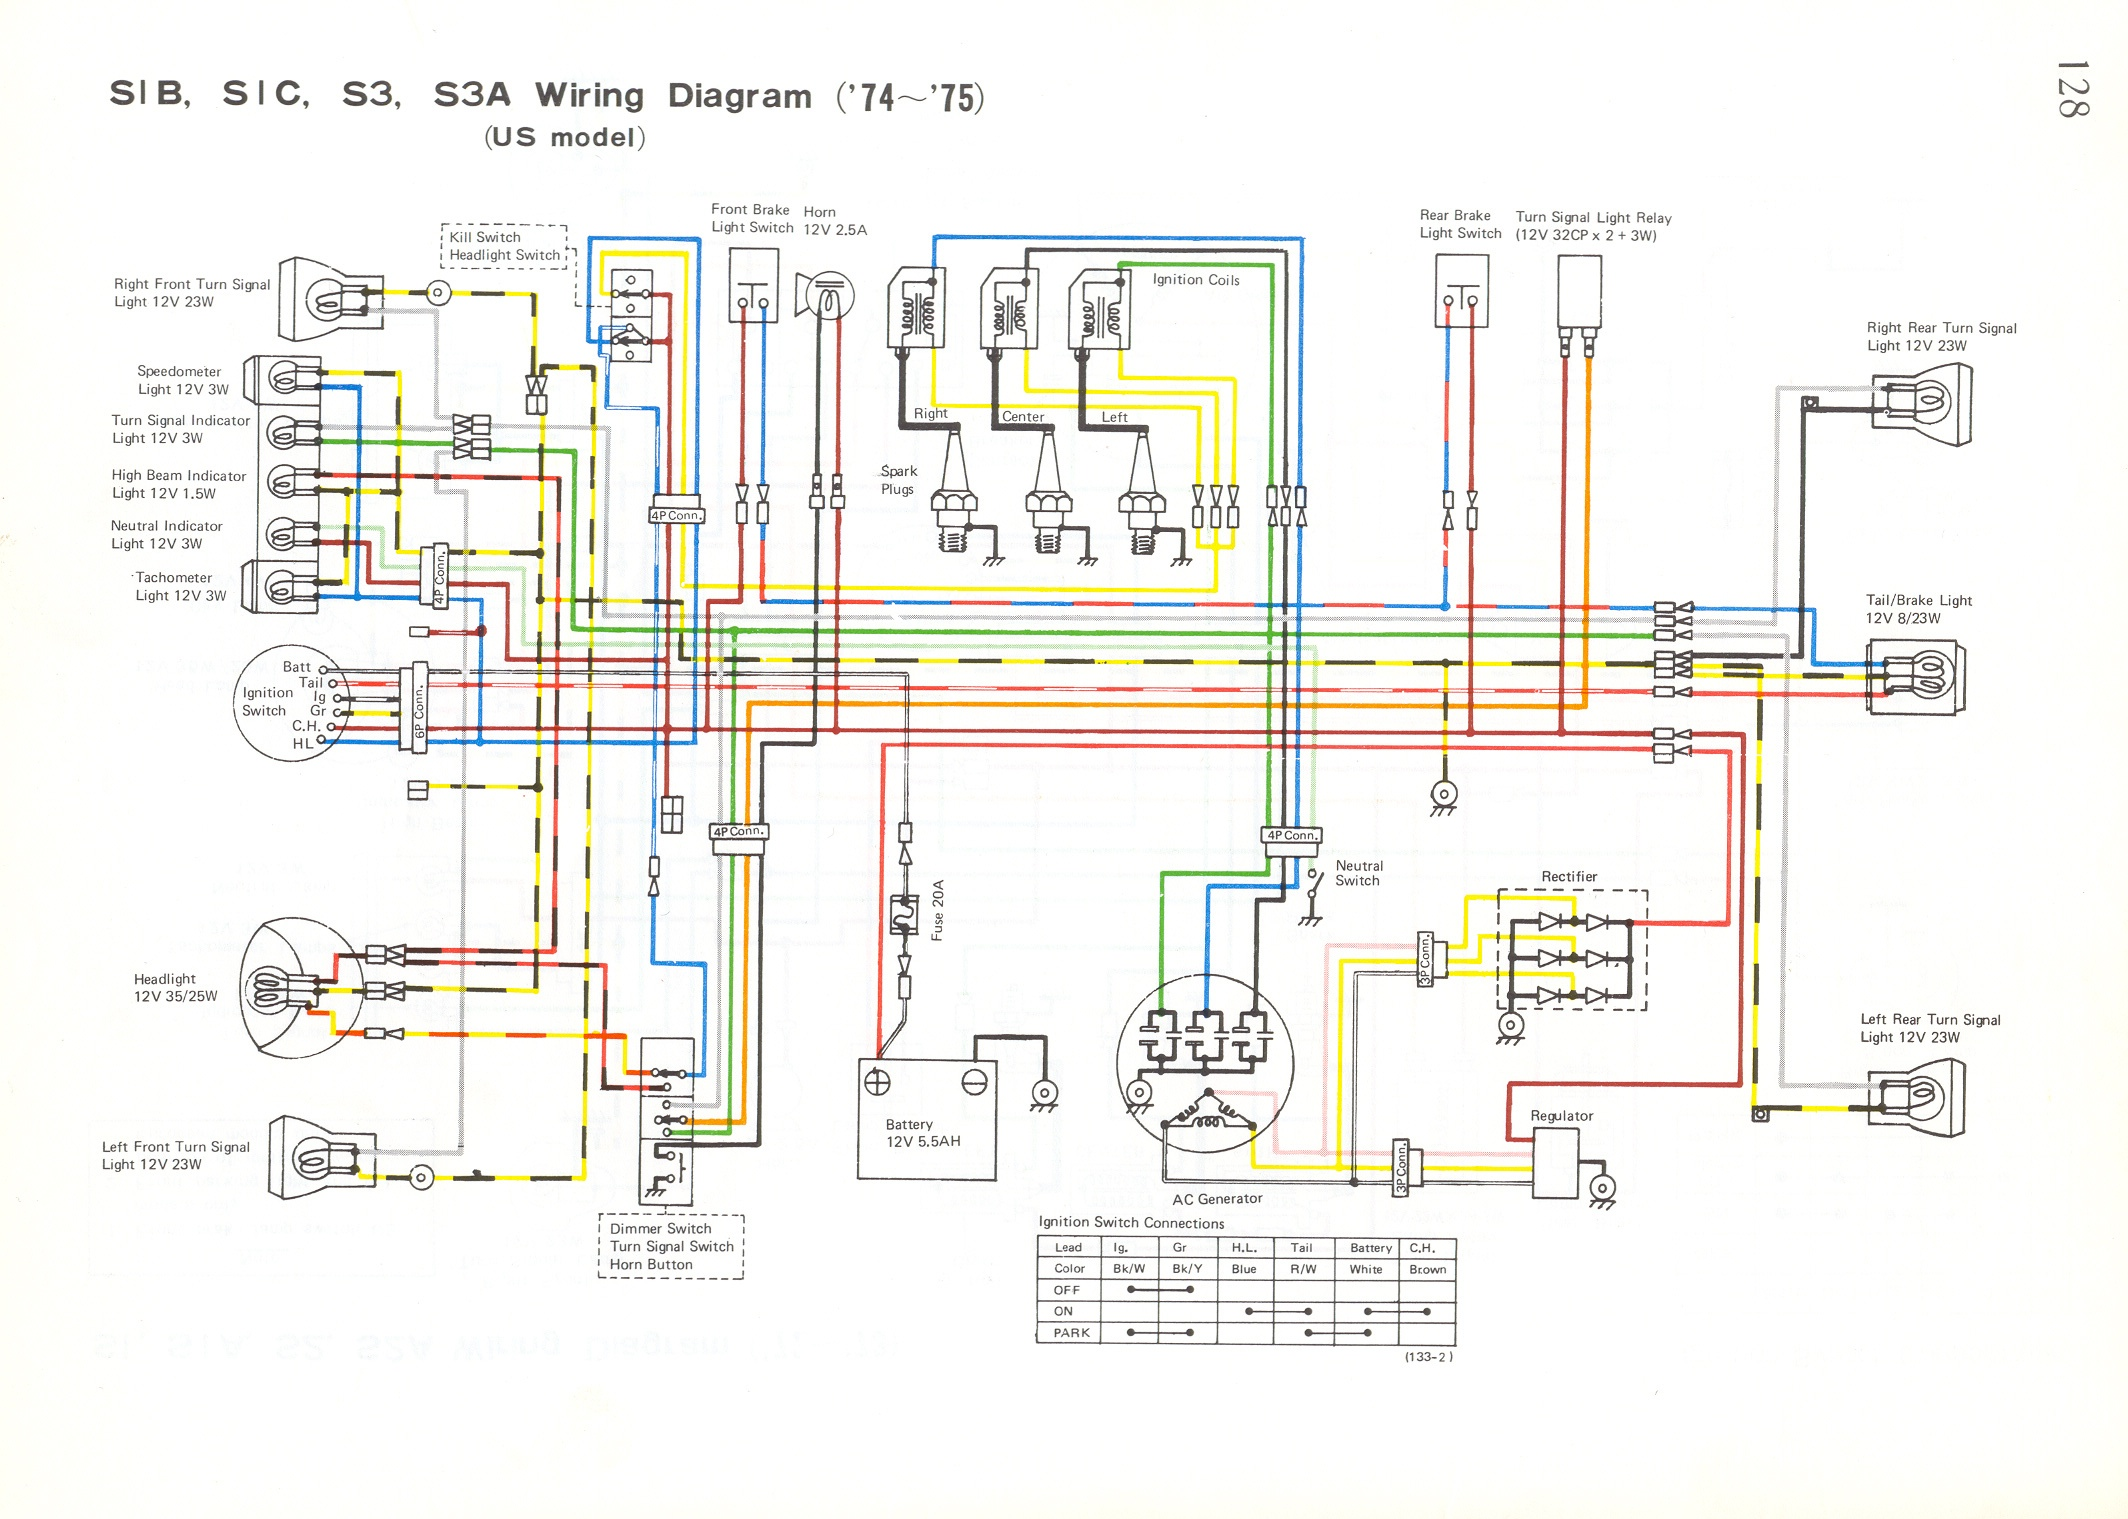 Kawasaki S3 Wiring Diagram Not Lossing Plymouth Duster Get Free Image About 1972 Fuse Box Engine 300 Atv Klf